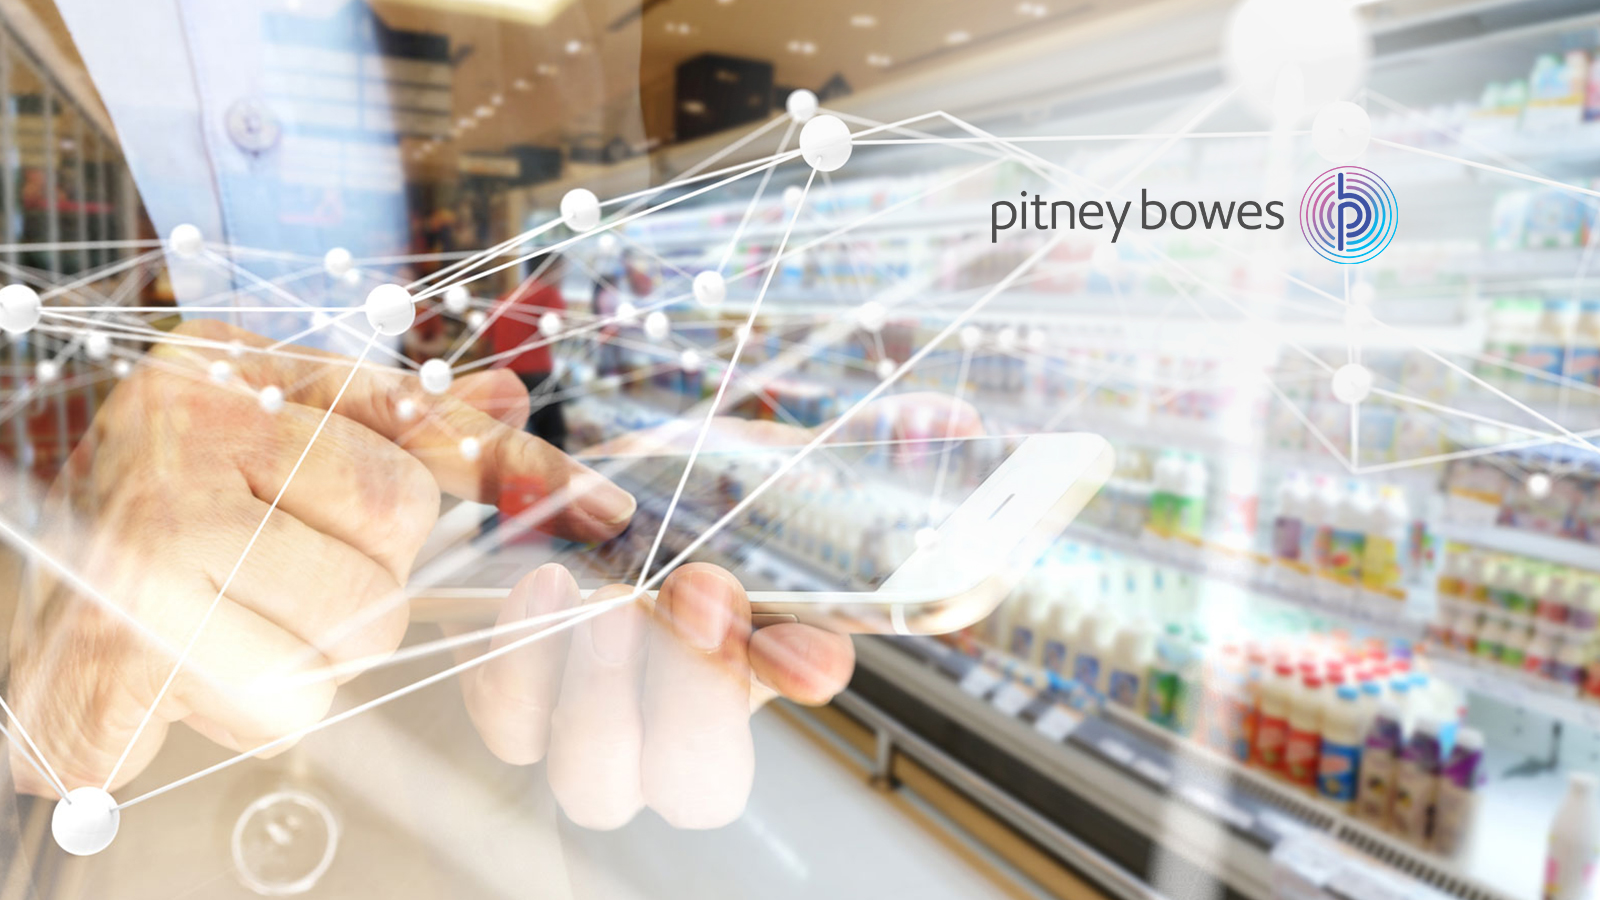 Pitney Bowes Digital Transformation